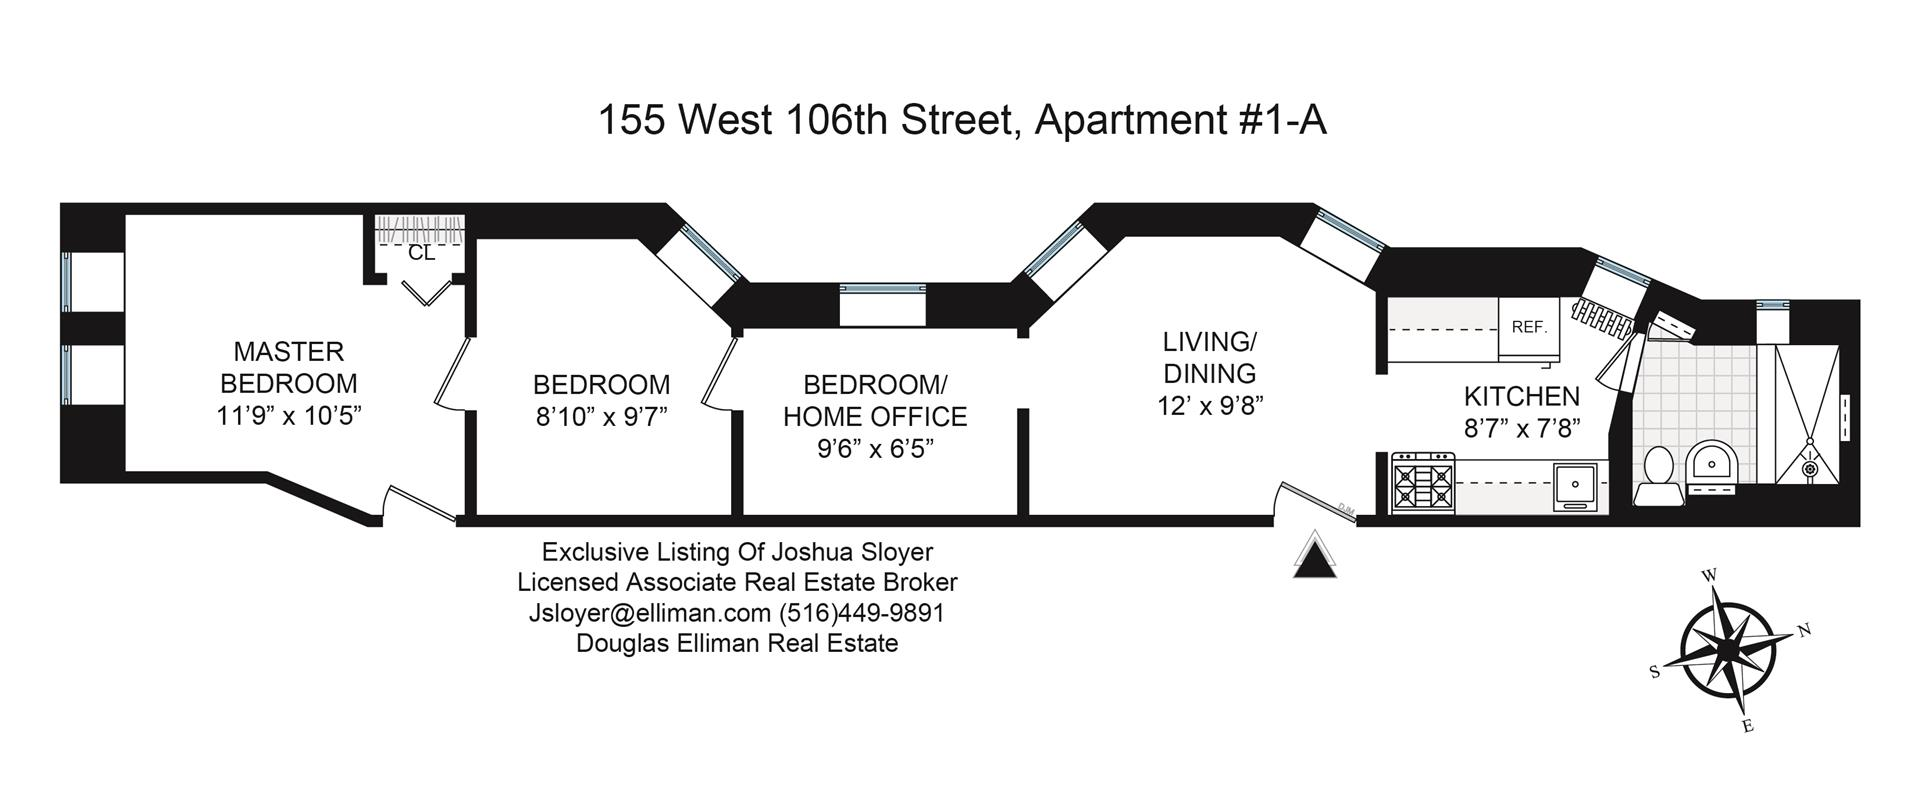 Floor plan of 155 West 106th St, 1A - Morningside Heights, New York